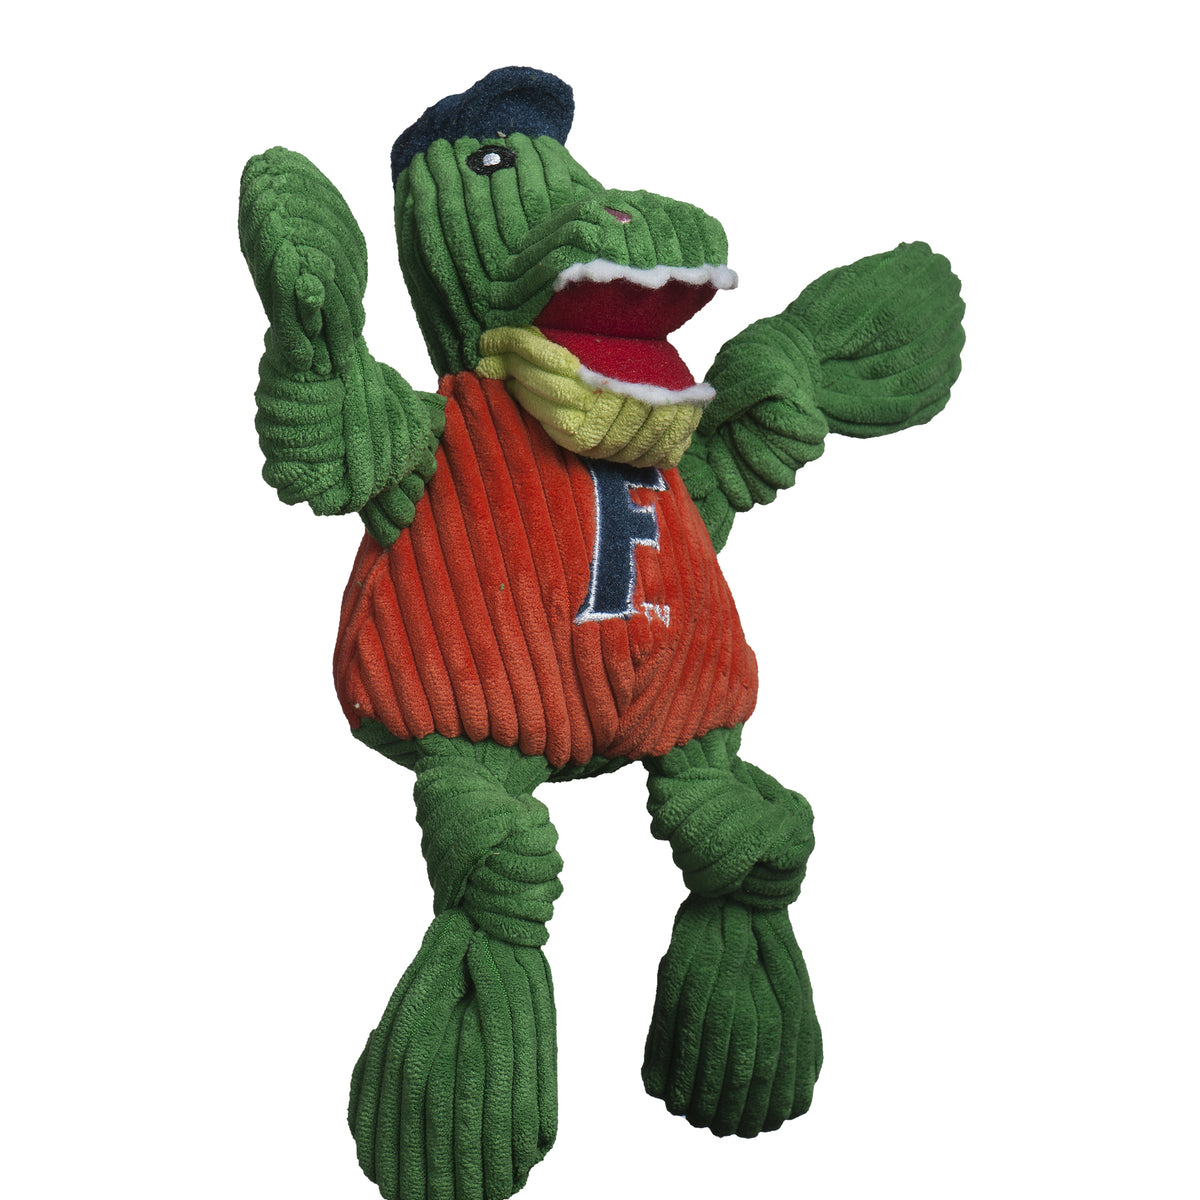 Florida (U. of) Albert Gator Knottie™